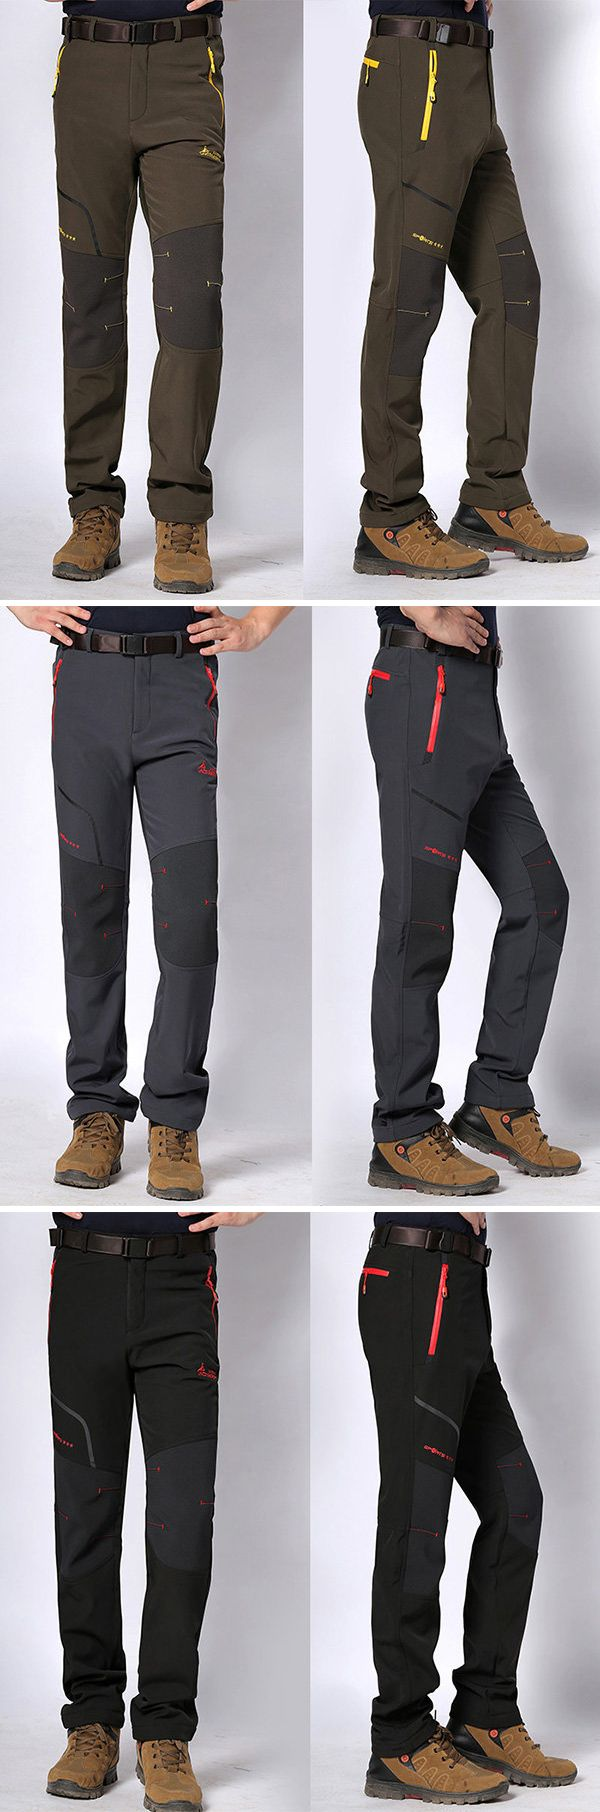 Mens Outdoor Sport Pants: Water-repellent/Breathable